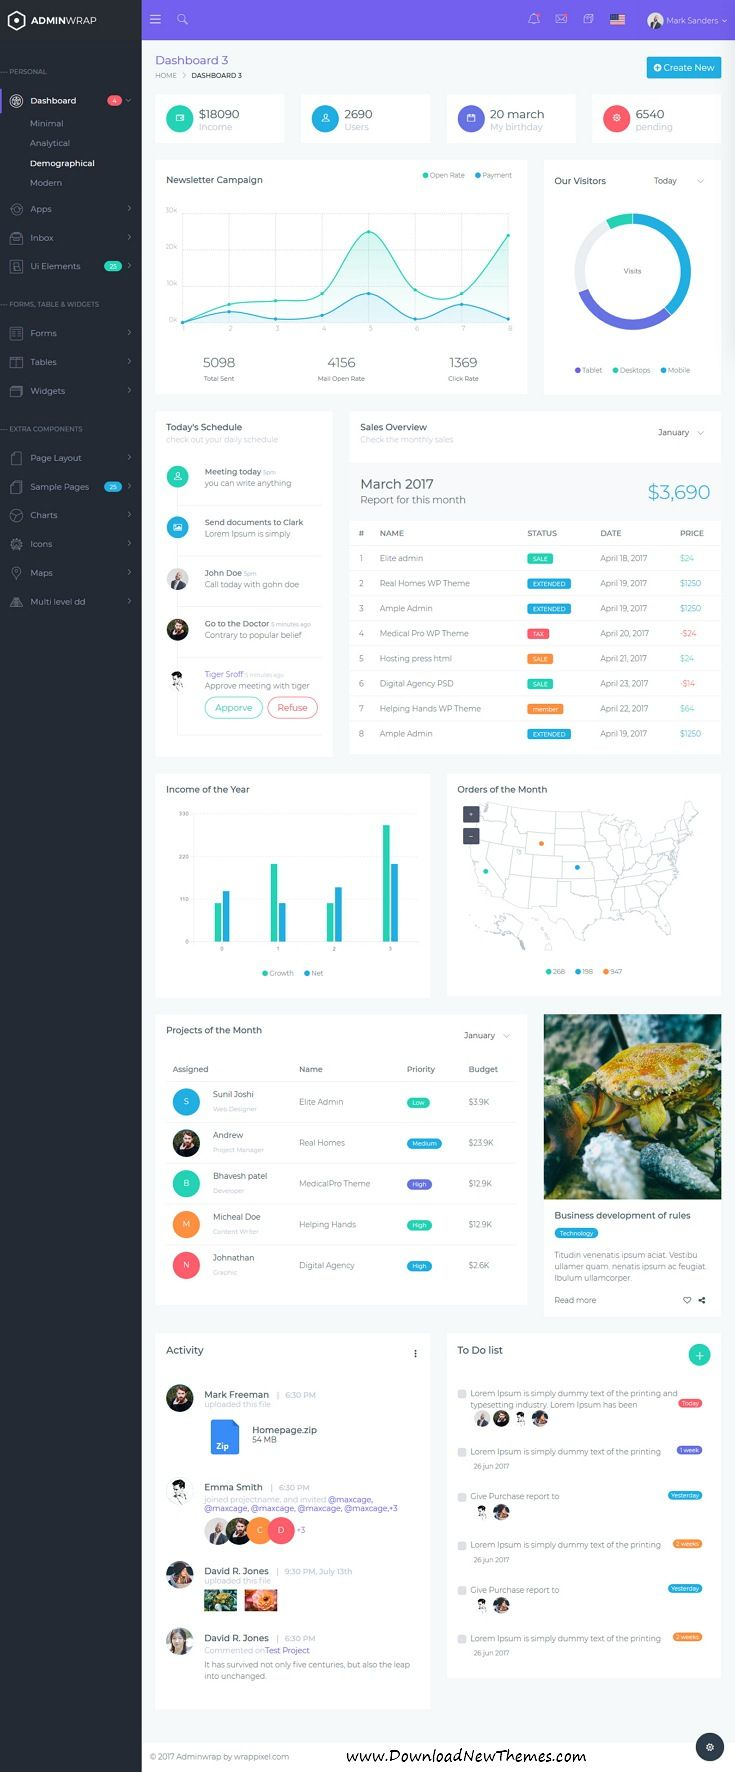 AdminWrap is clean and modern design 5in1 responsive bootstrap #dashboard template for custom #admin panels, CMS, CRM, #SaaS, and webapp applications website with 100+ Integrated Plugins, 500+ Pages, 3000+ Font Icons, 500+ #UI Components to live preview & download click on image or Visit 👆 #ux #webdesign